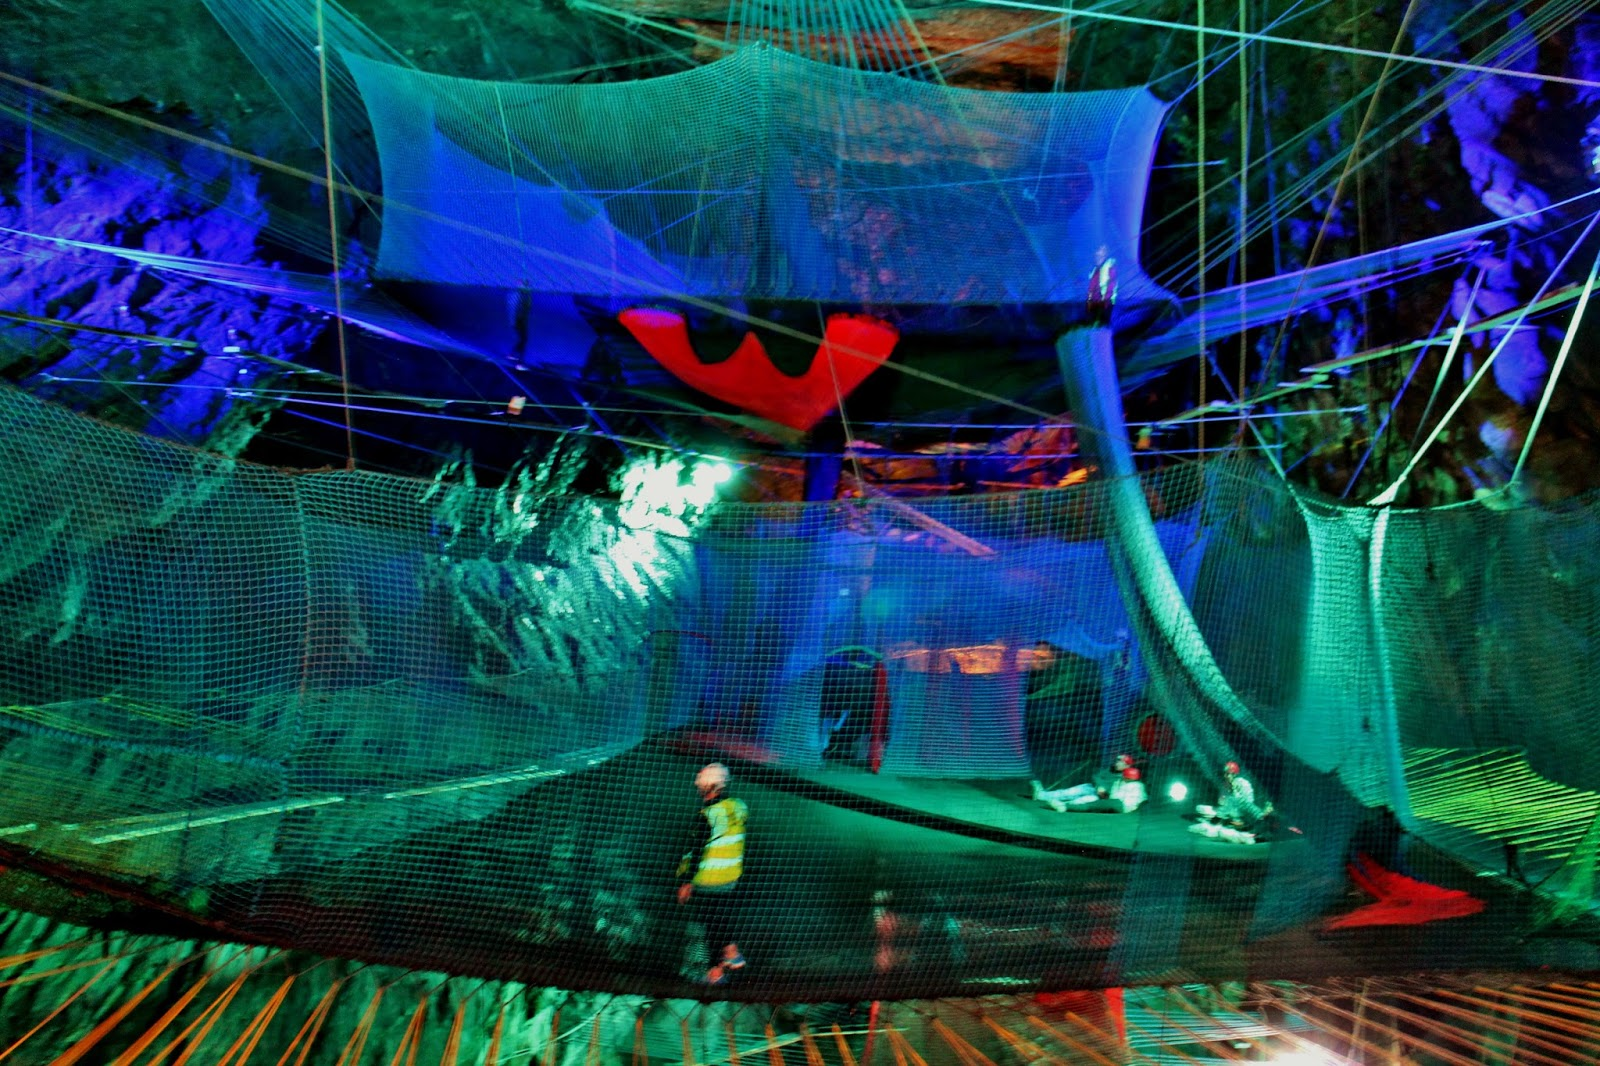 Thoughts And Theatre Wales Photo Diary - Gigantic underground trampoline inside cave looks amazing